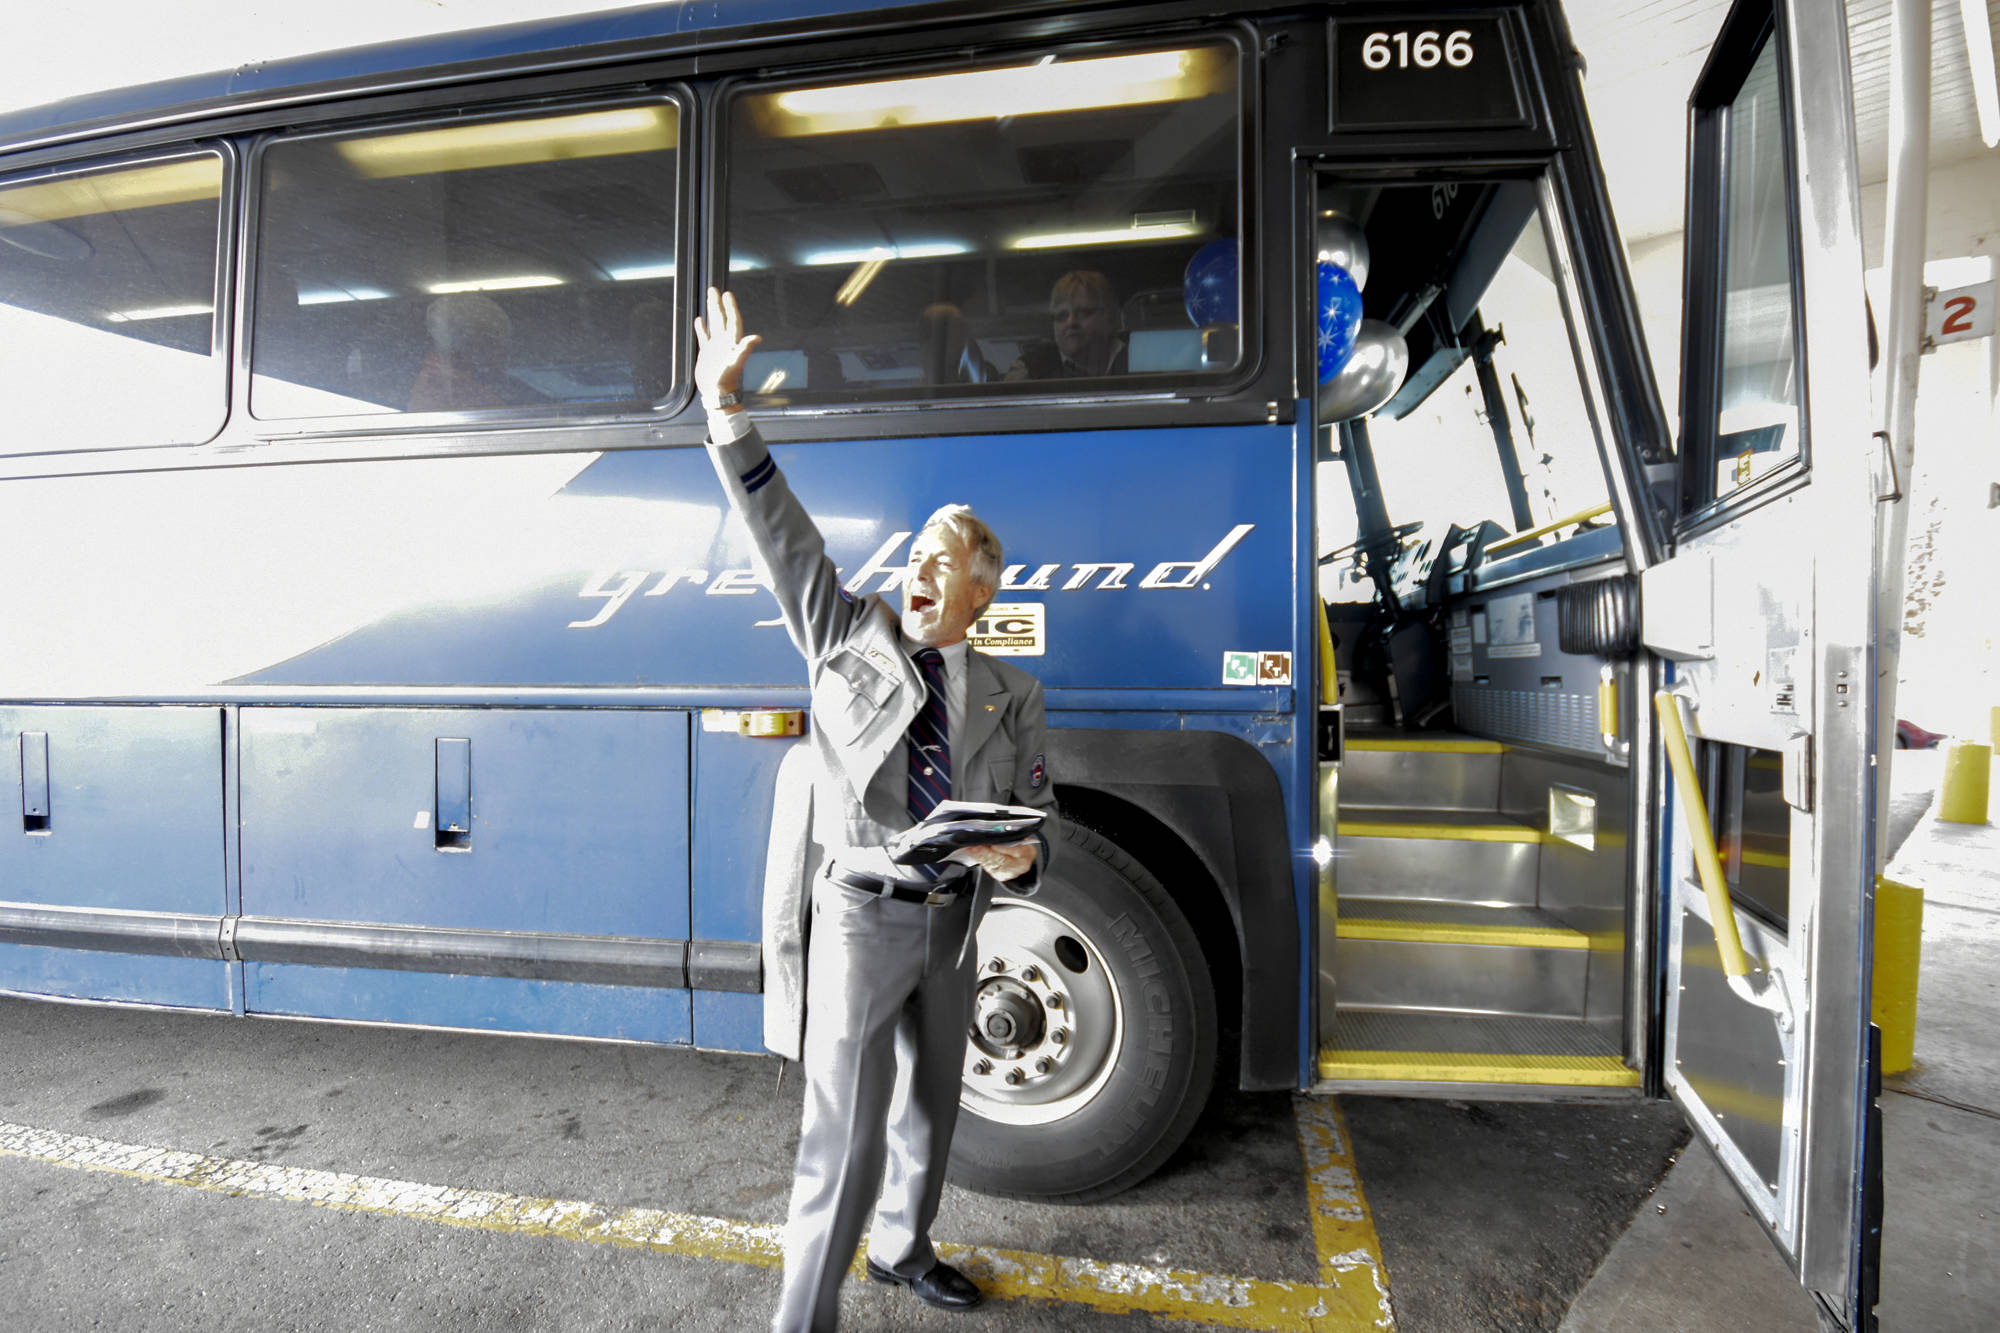 Veteran Greyhound bus driver Blake Moore gives a shout out to those who gathered to wish him well on his final route Wednesday. Mark Brett/Western News